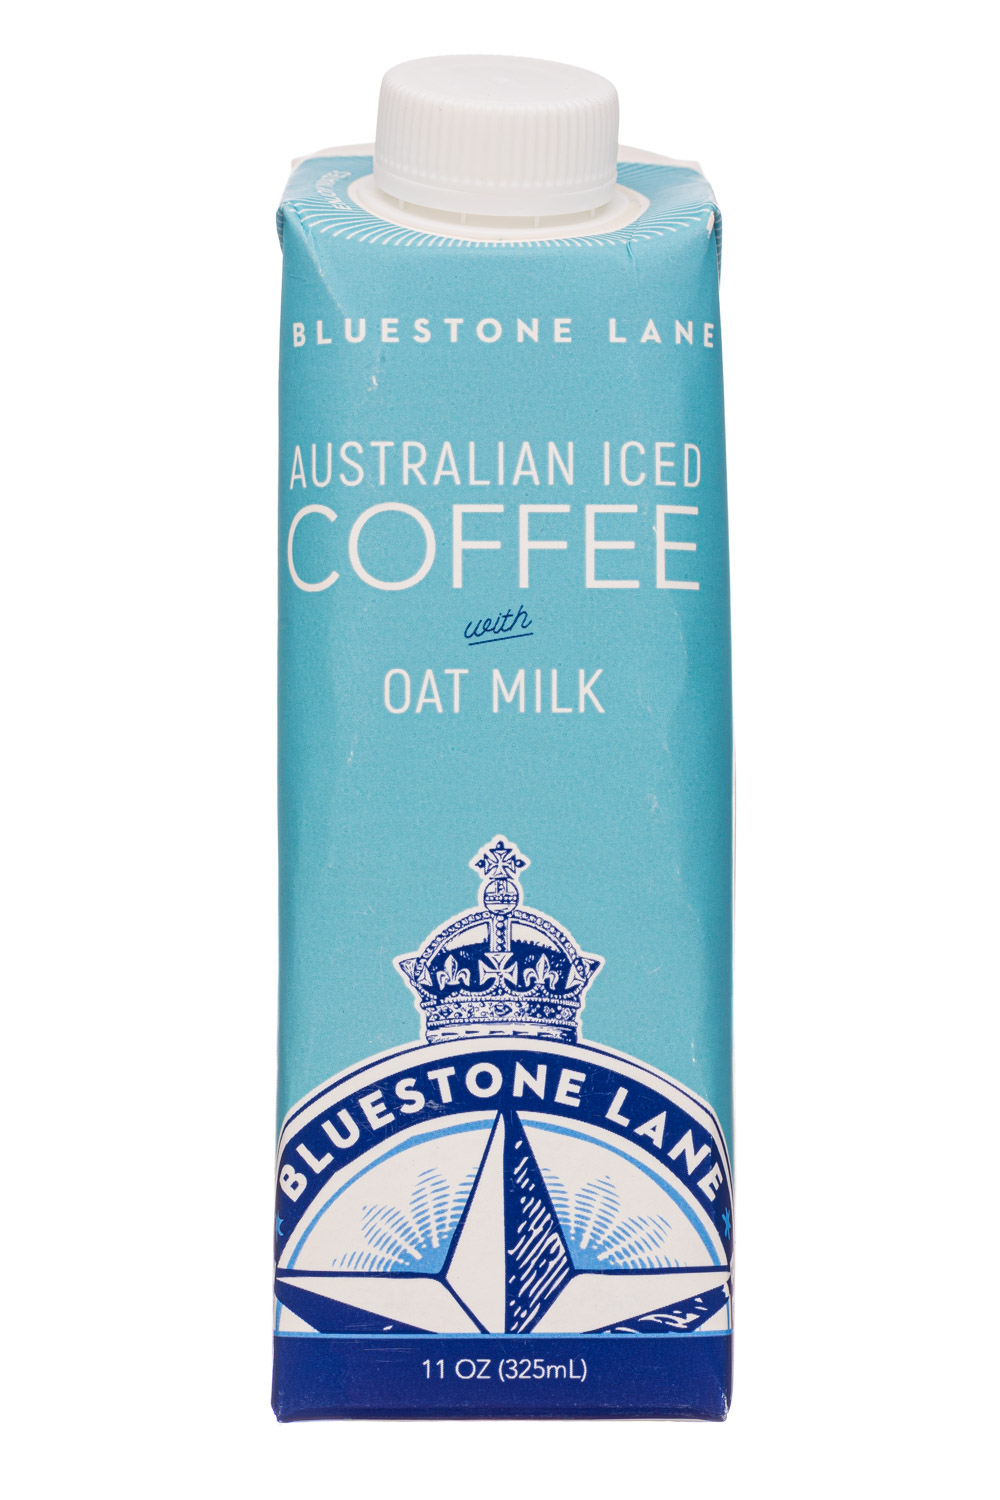 Bluestone Lane: BluestoneLane-11oz-AustralianIcedCoffee-Oat-Front